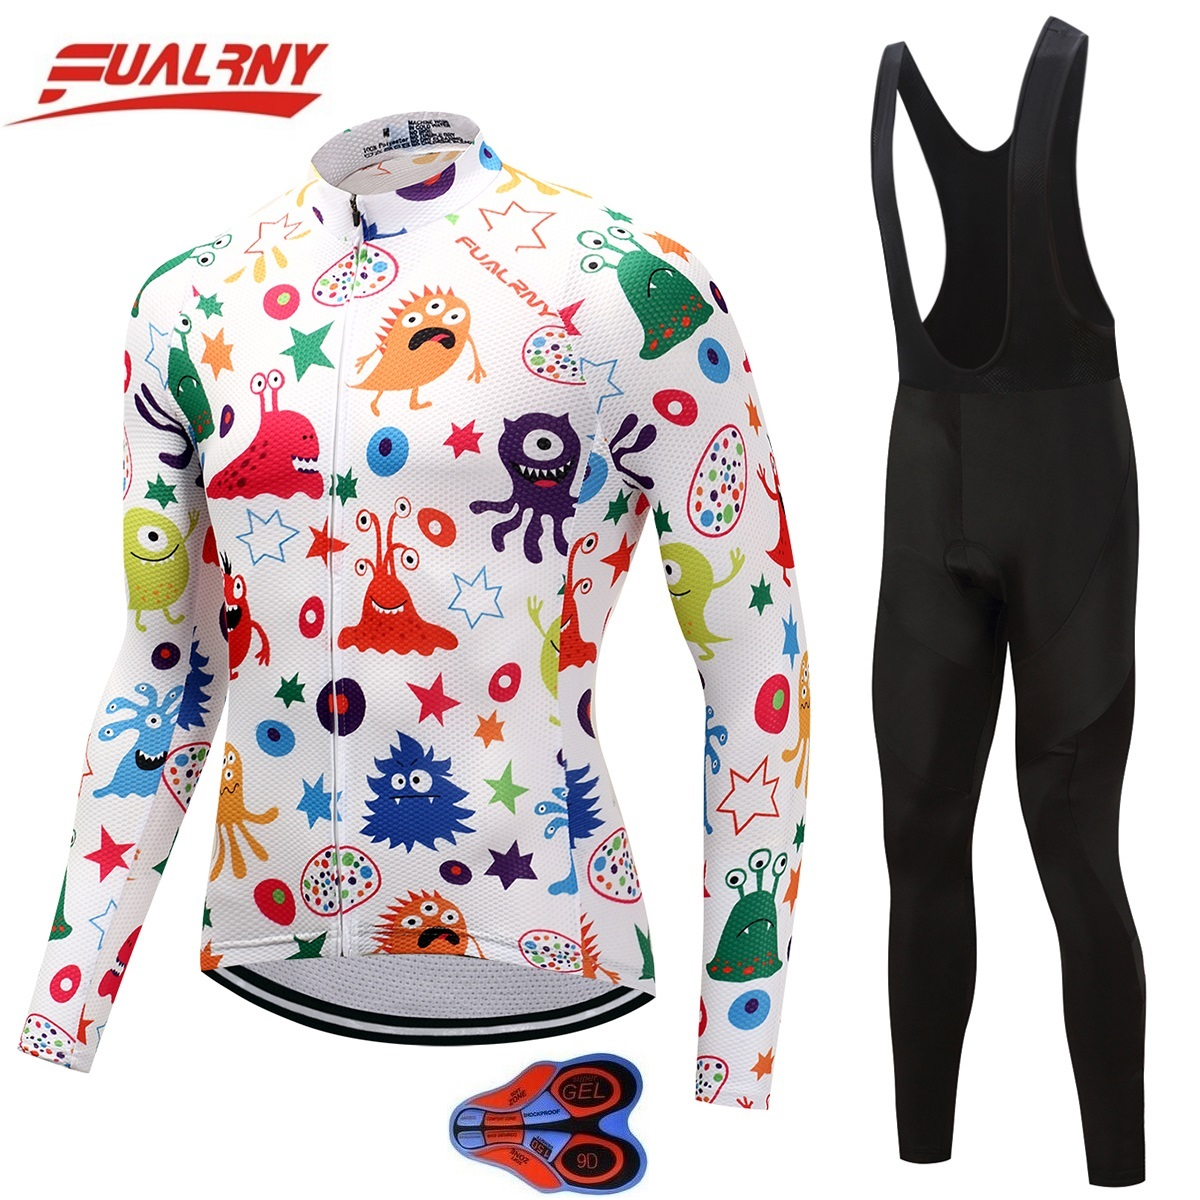 2019 Team FUALRNY Long sleeve Ropa Ciclismo Cycling Jersey sets 9D/Autumn Mountian Bicycle Clothing/MTB Bike Clothes Man Cartoon